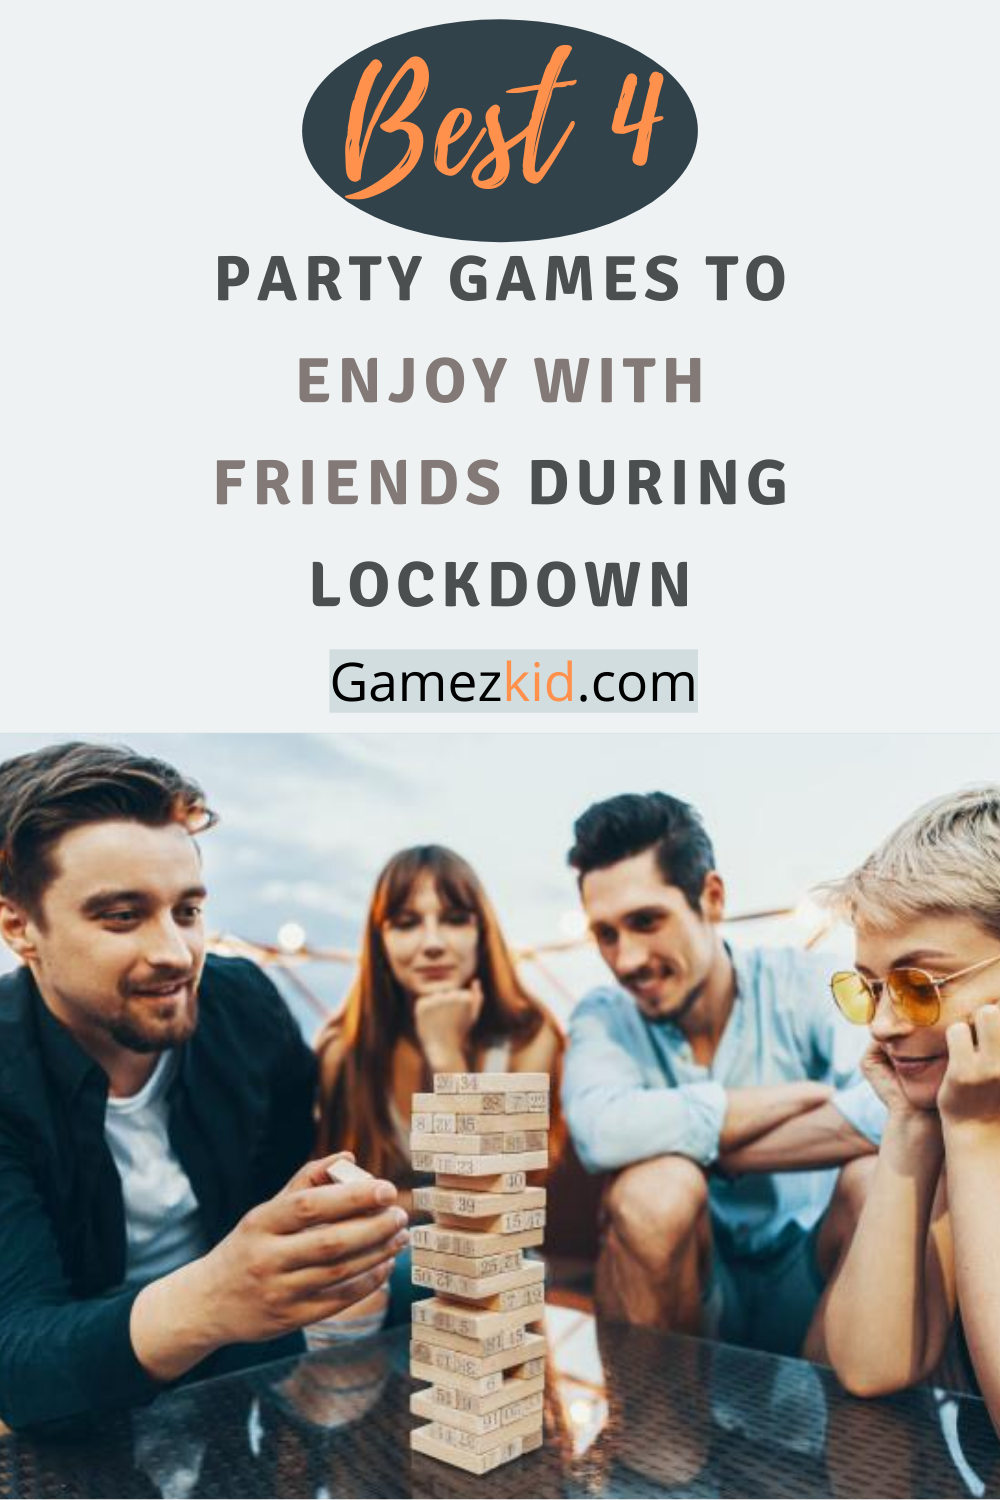 Top 4 Party Games To Enjoy With Friends During Lockdown in